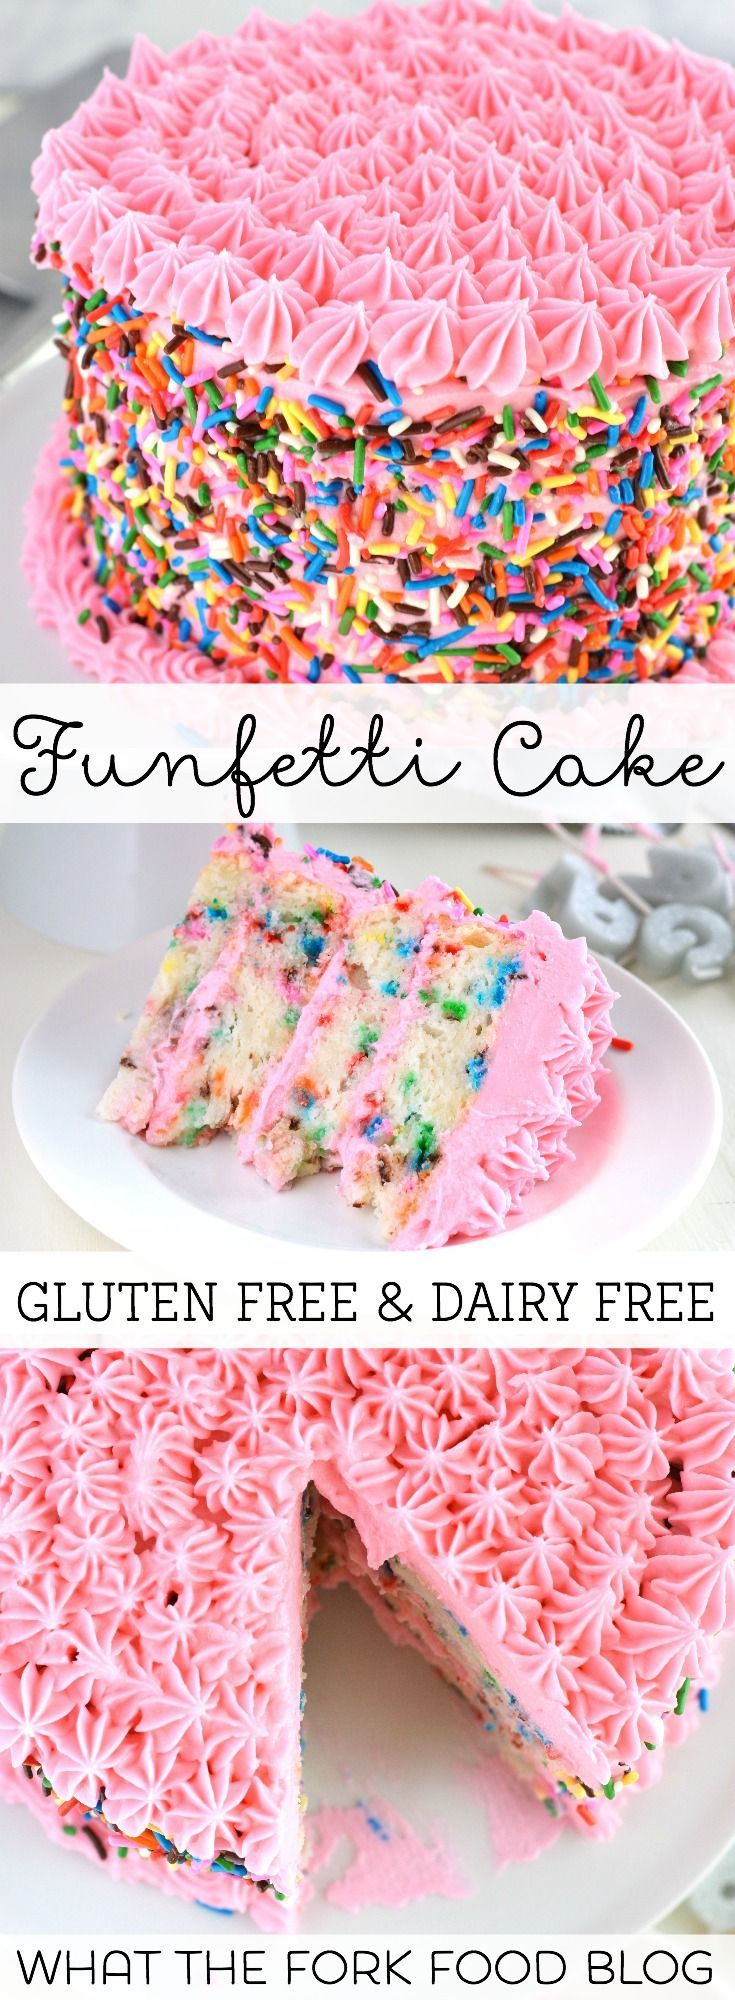 Gluten Free Funfetti Cake from What The Fork Food Blog | @WhatTheForkBlog | whattheforkfoodblog.com